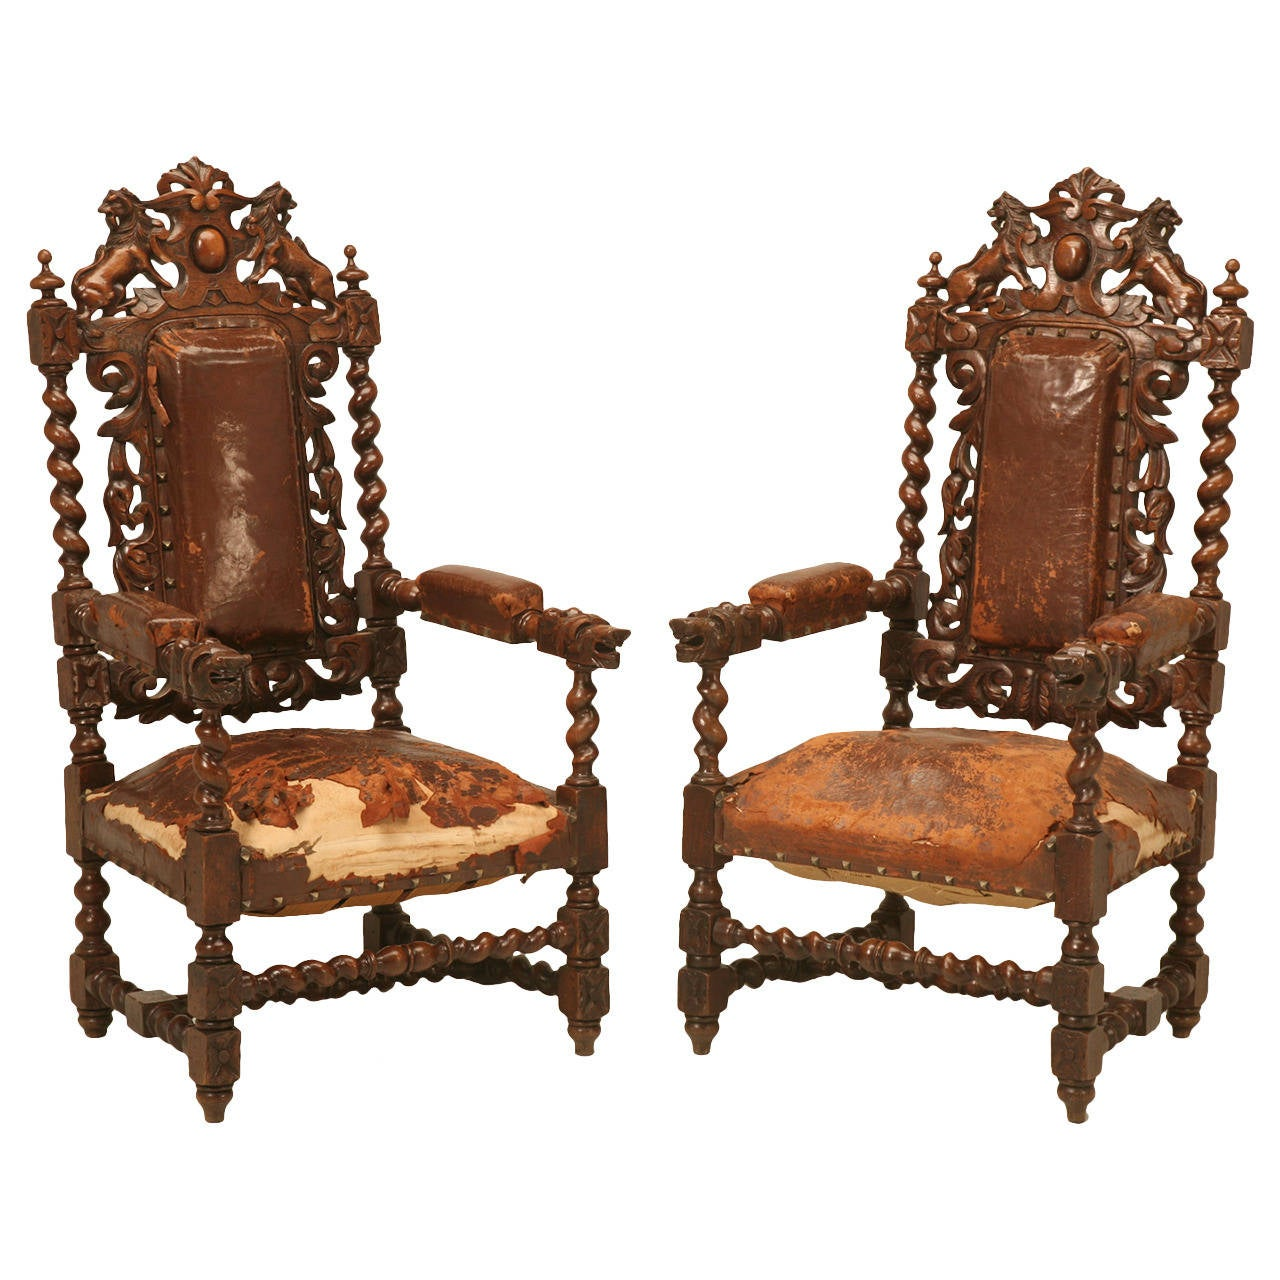 A Pair Of Period French Chairs With Missoni Fabric At 1stdibs: Pair Of French Barley Twist Over The Top Throne Chairs At